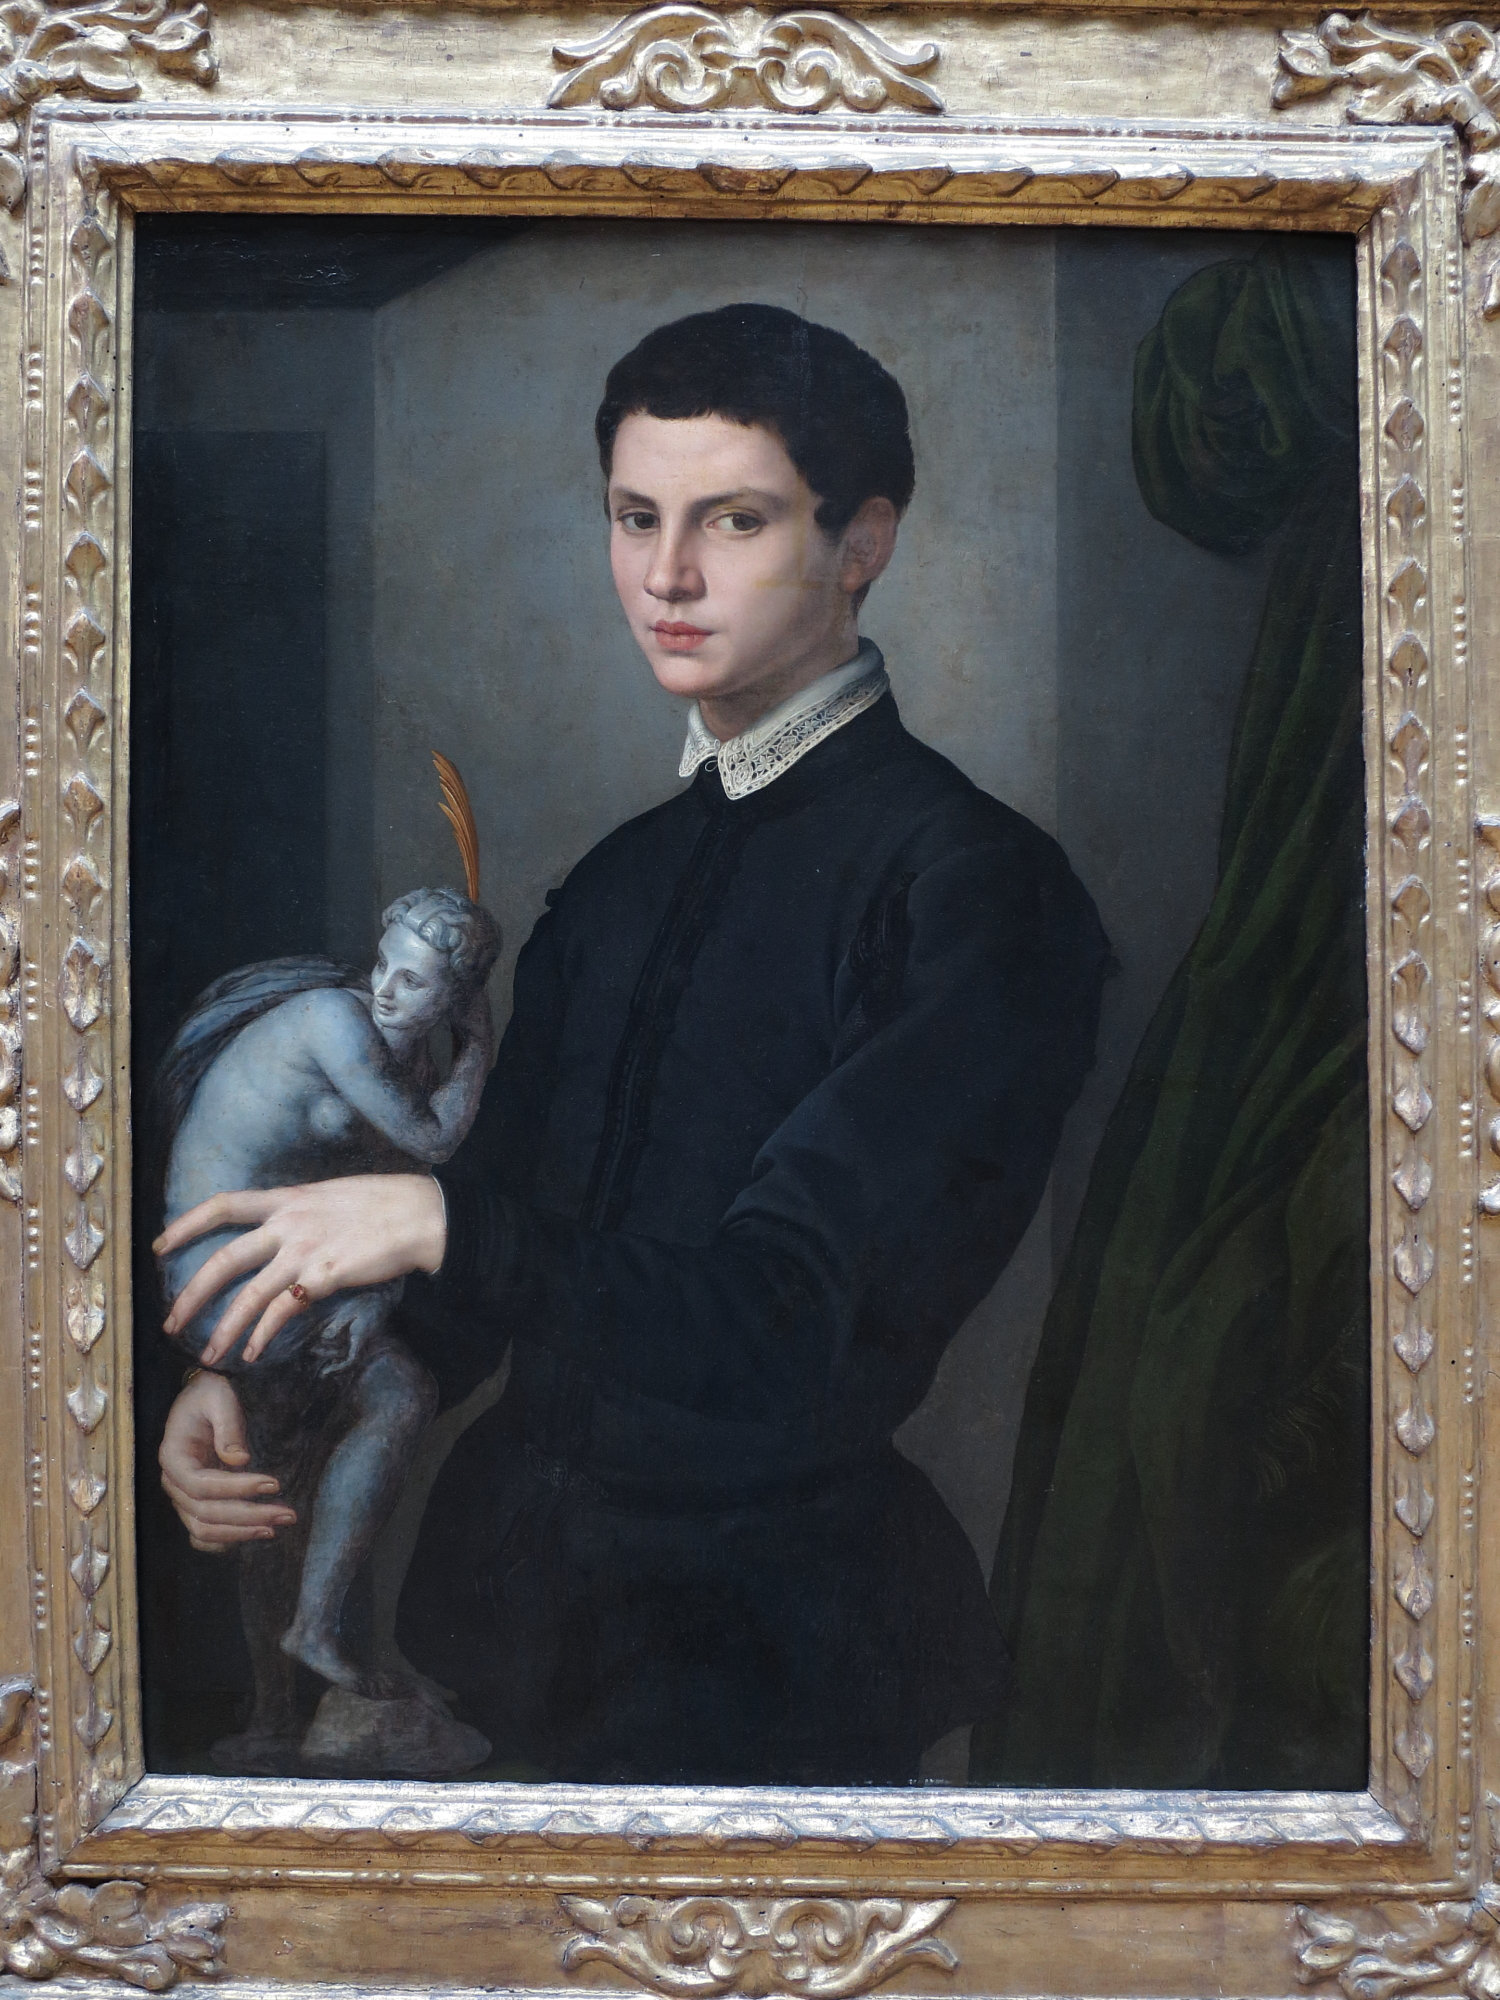 Portrait of a Man Holding a Statuette by Bronzino, Florence, 1503 - id. 1572